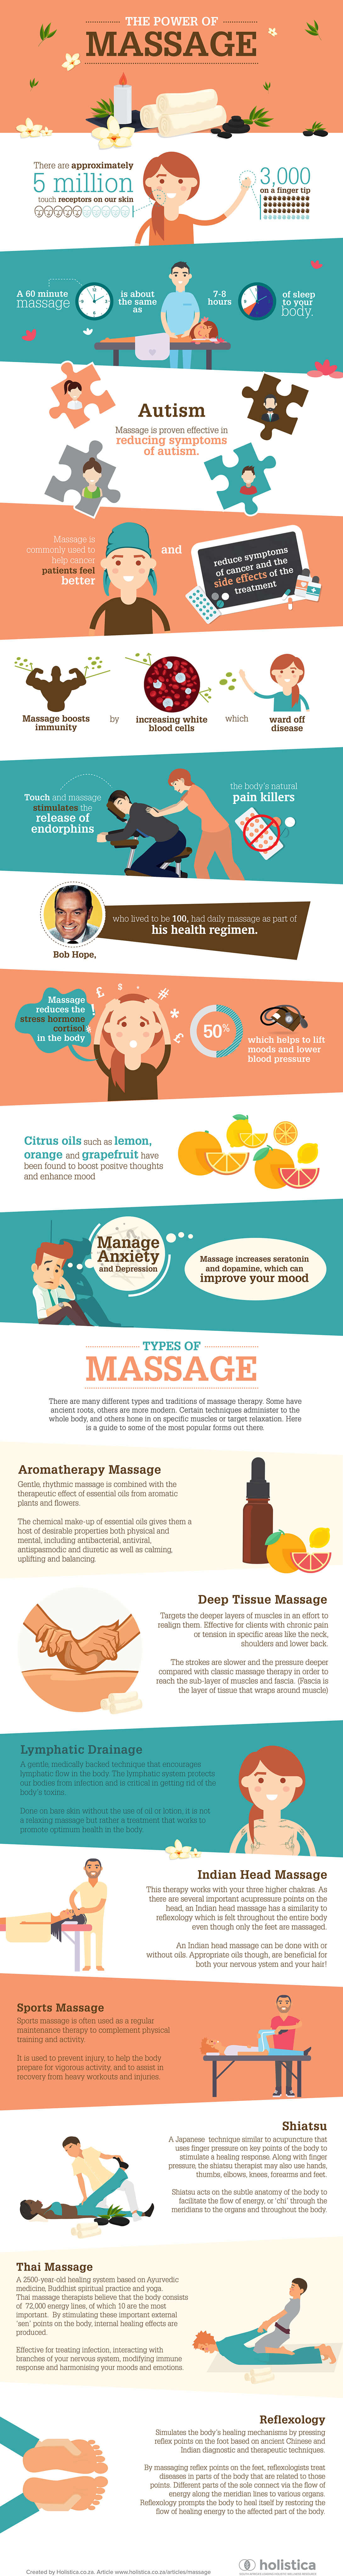 power-of-massage-infographic-plaza